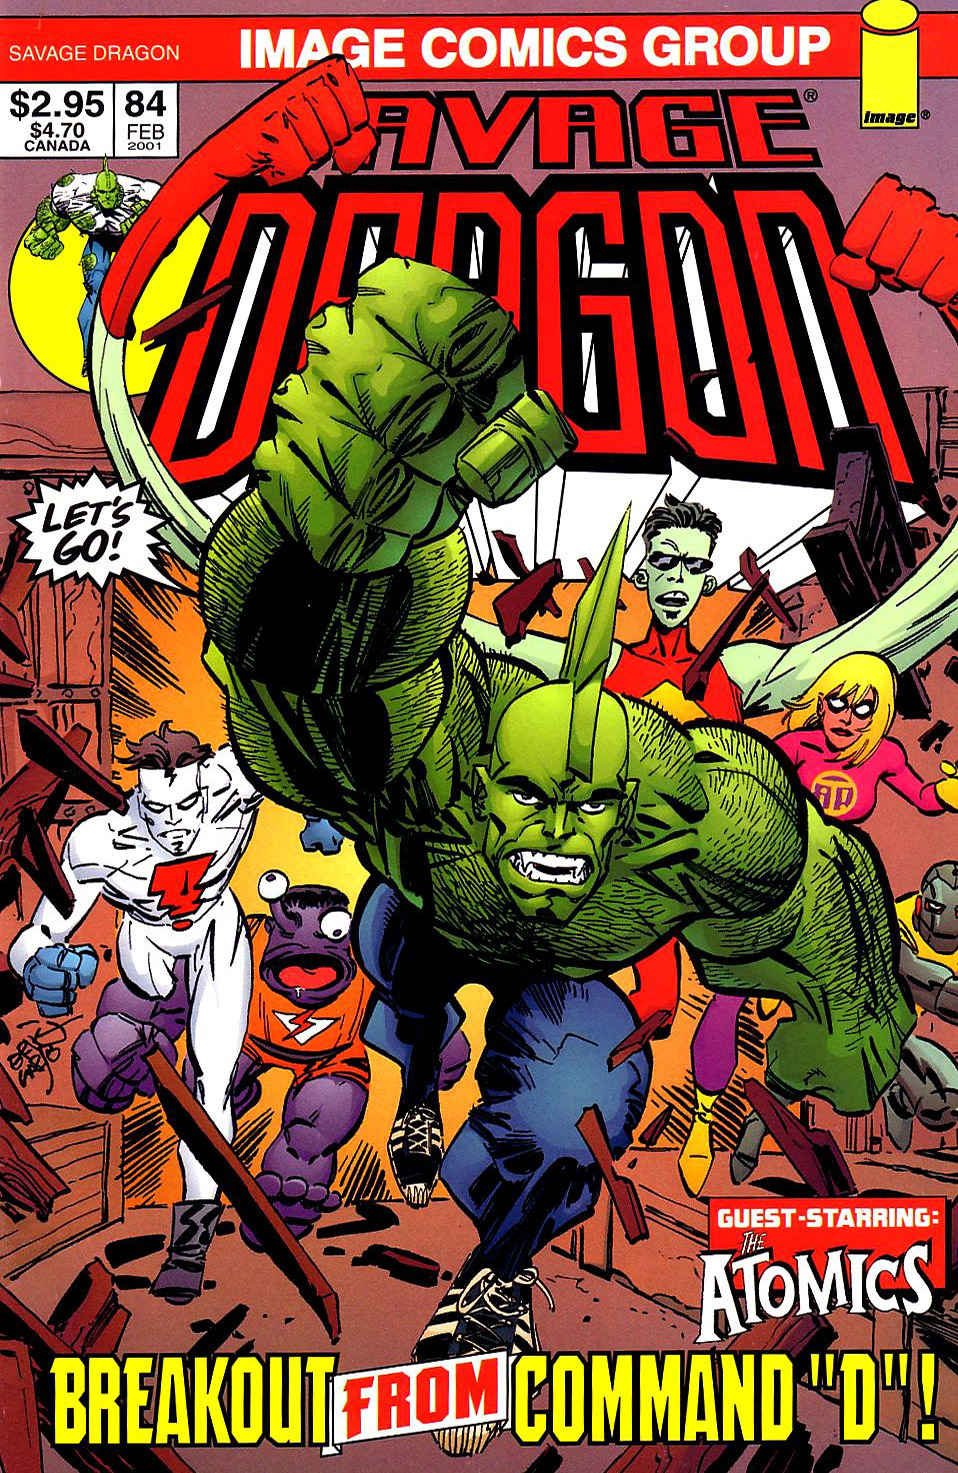 Cover Savage Dragon Vol.2 #84